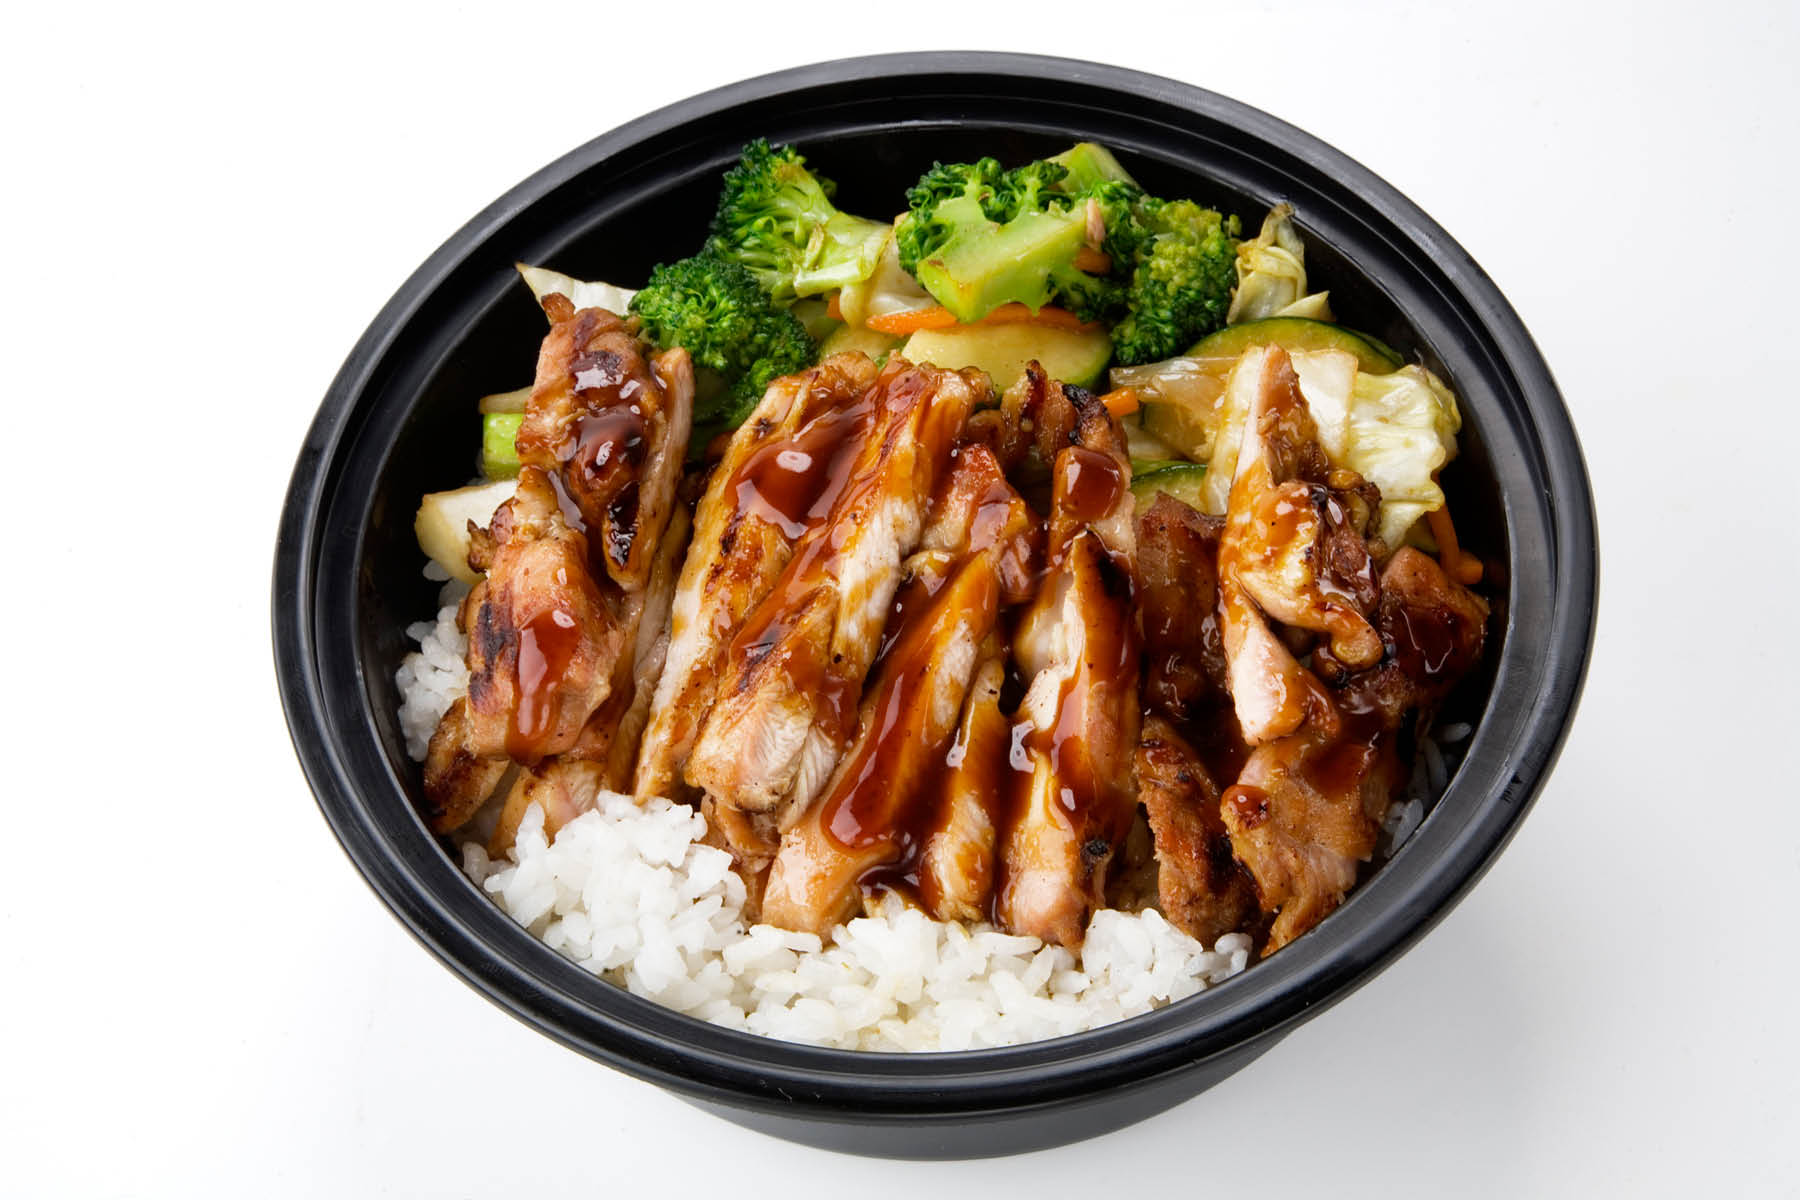 teriyaki bowl chicken coupons Las Vegas restaurant local savings